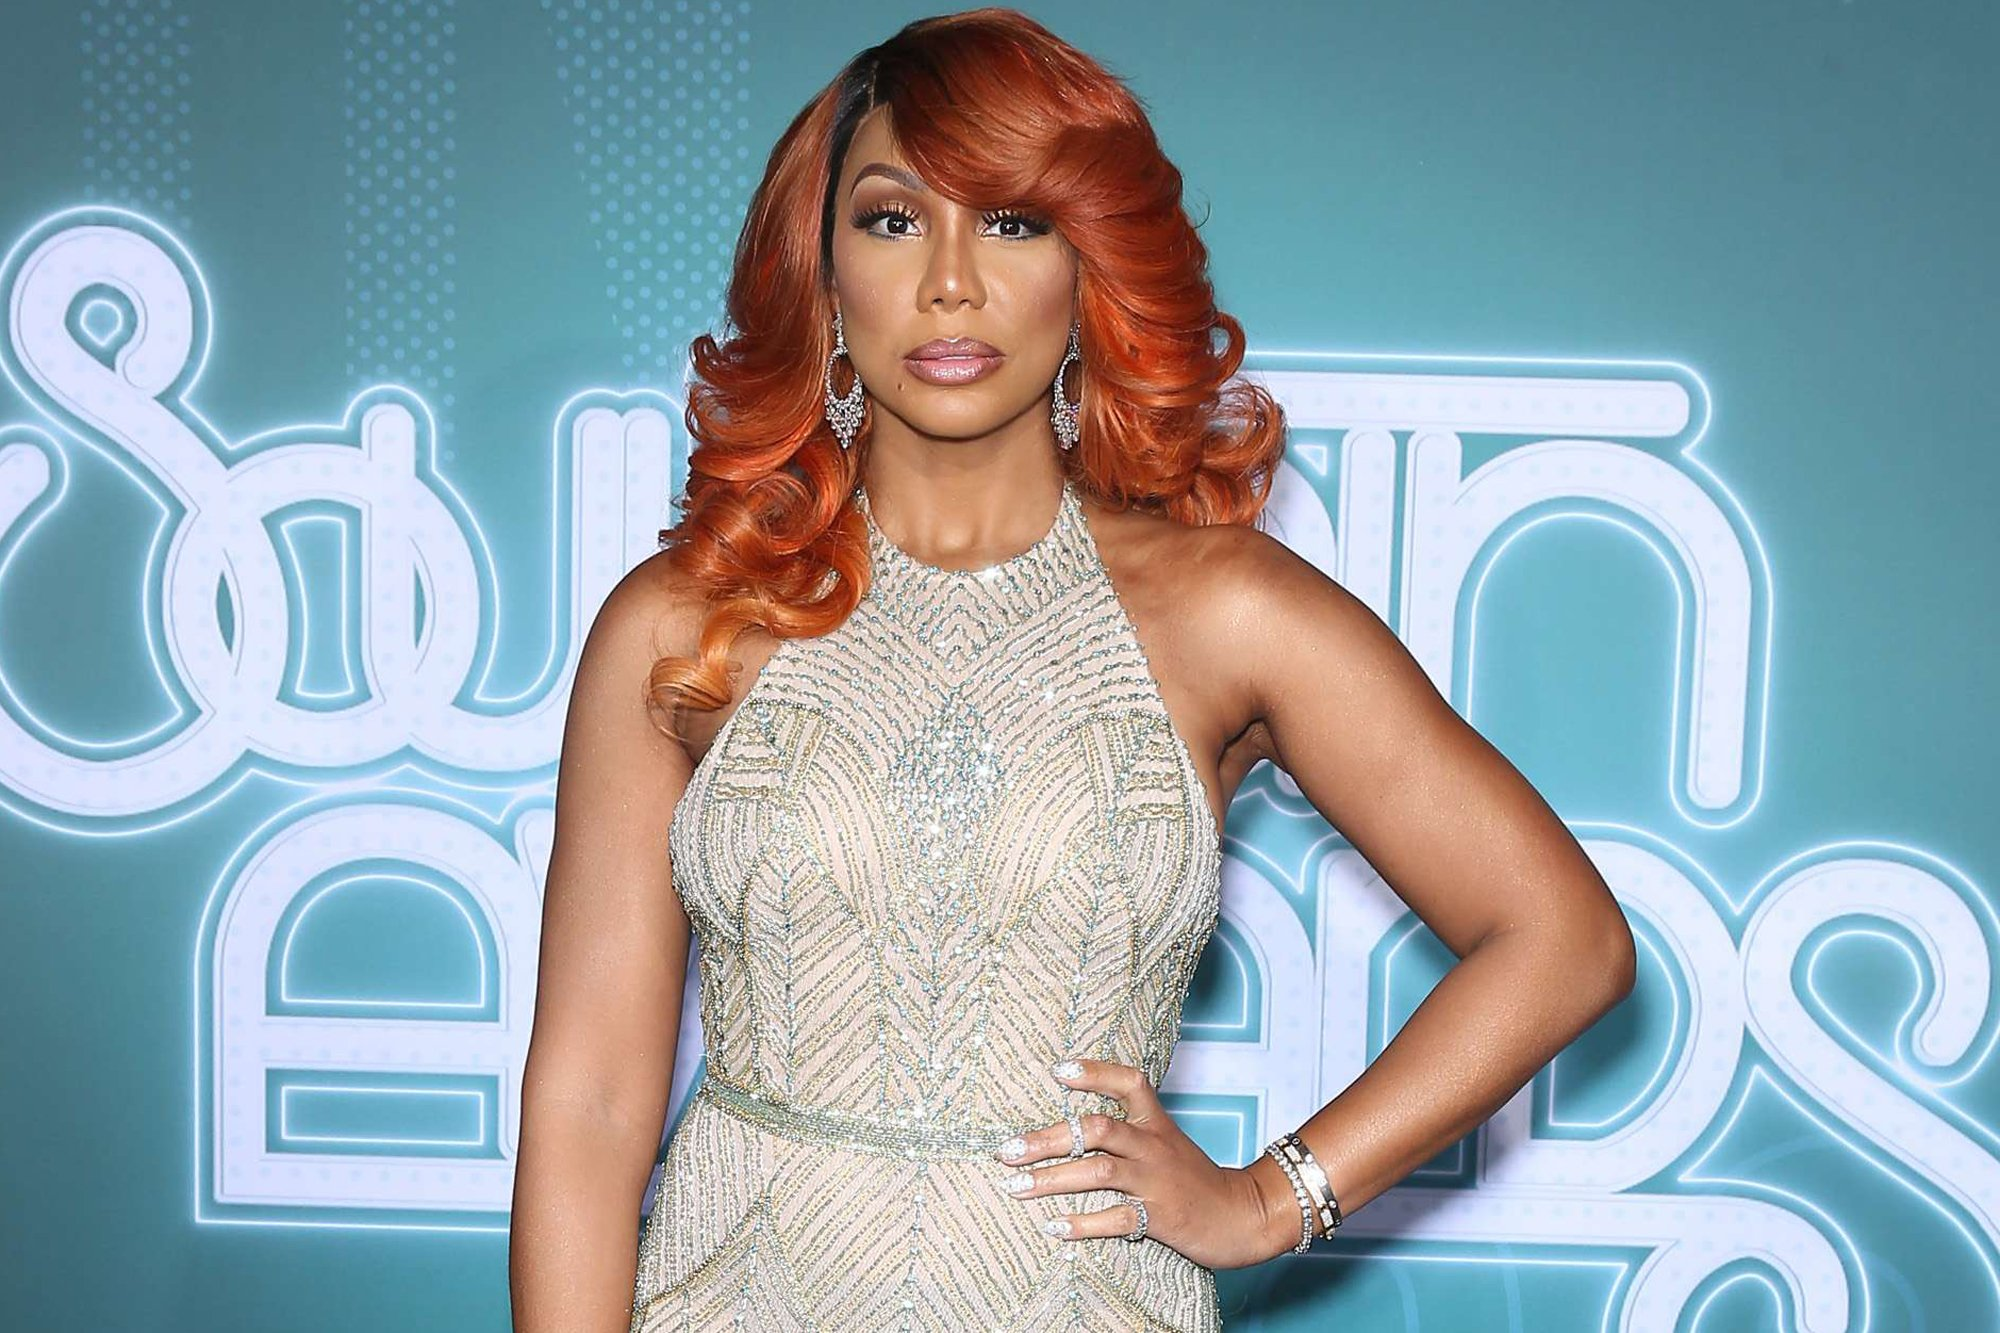 Tamar Braxton Announces Fans And Followers A Cyber Monday Offer